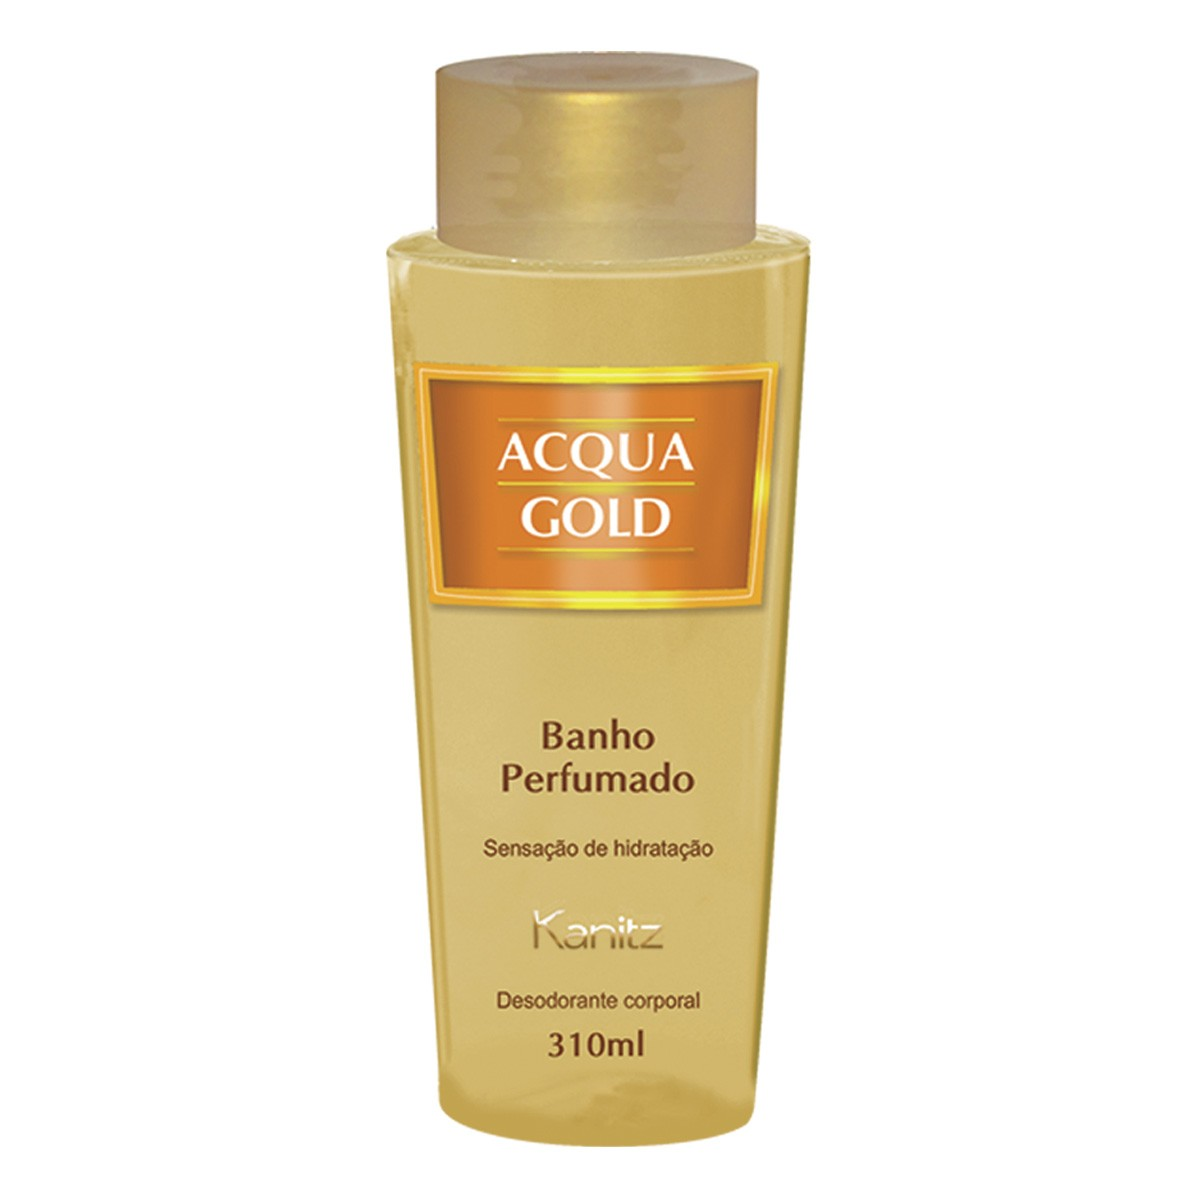 Deo Colônia Acqua Gold 310ml